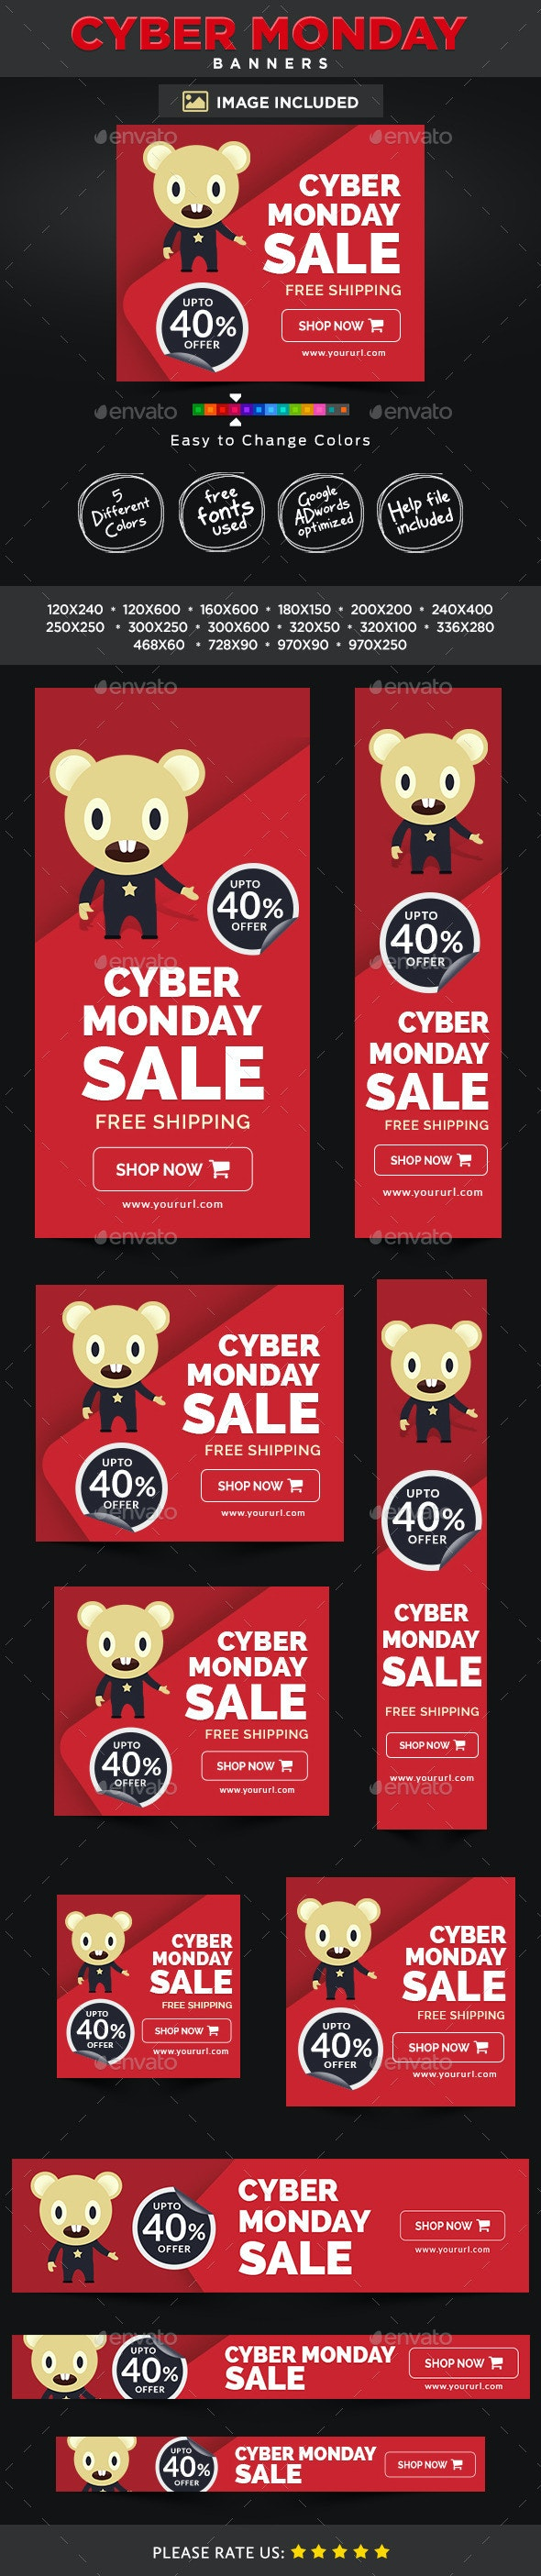 Cyber Monday Banners - Banners & Ads Web Elements